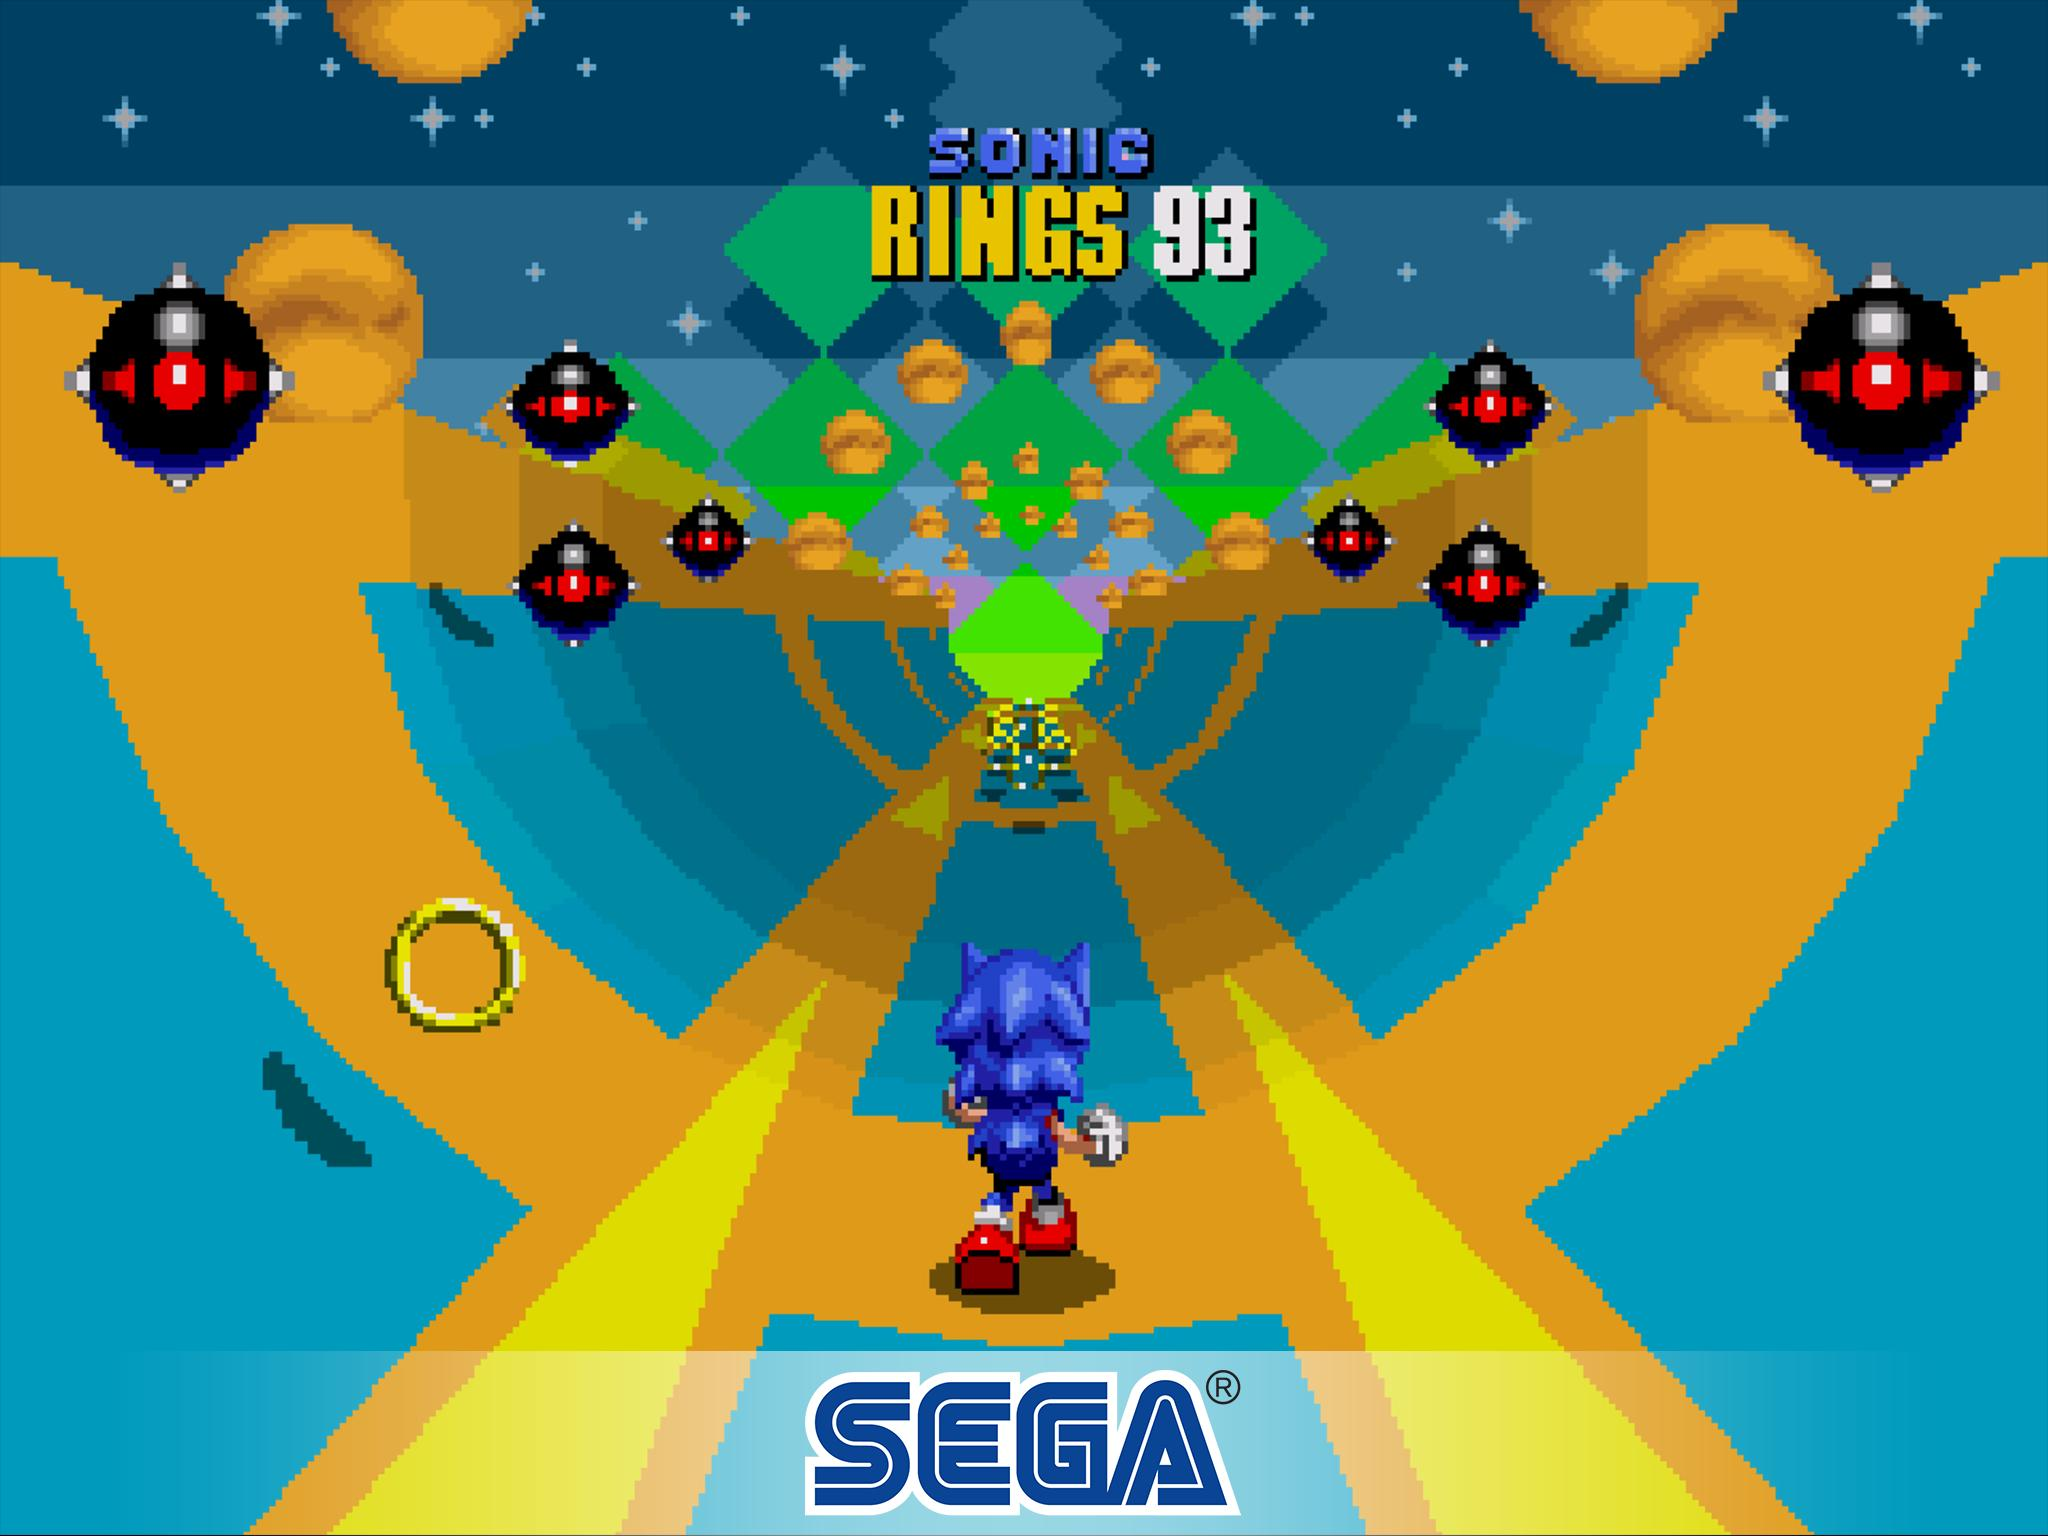 Sonic The Hedgehog 2 Classic for Android - APK Download